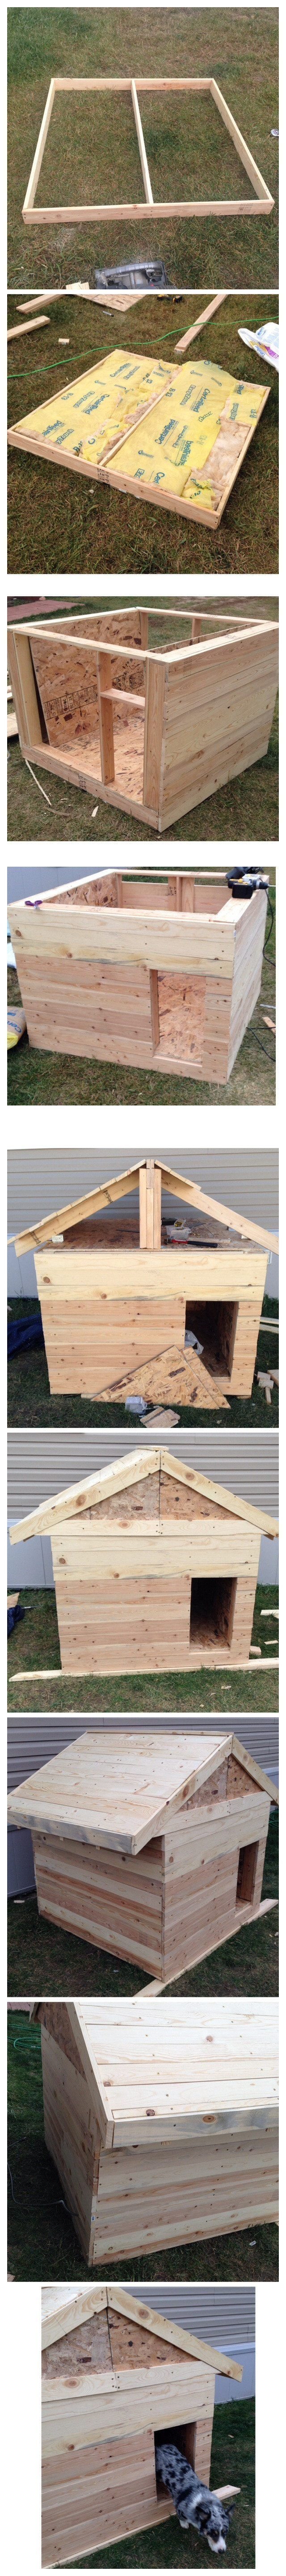 Building a heated and insulated dog house with household tools - Imgur